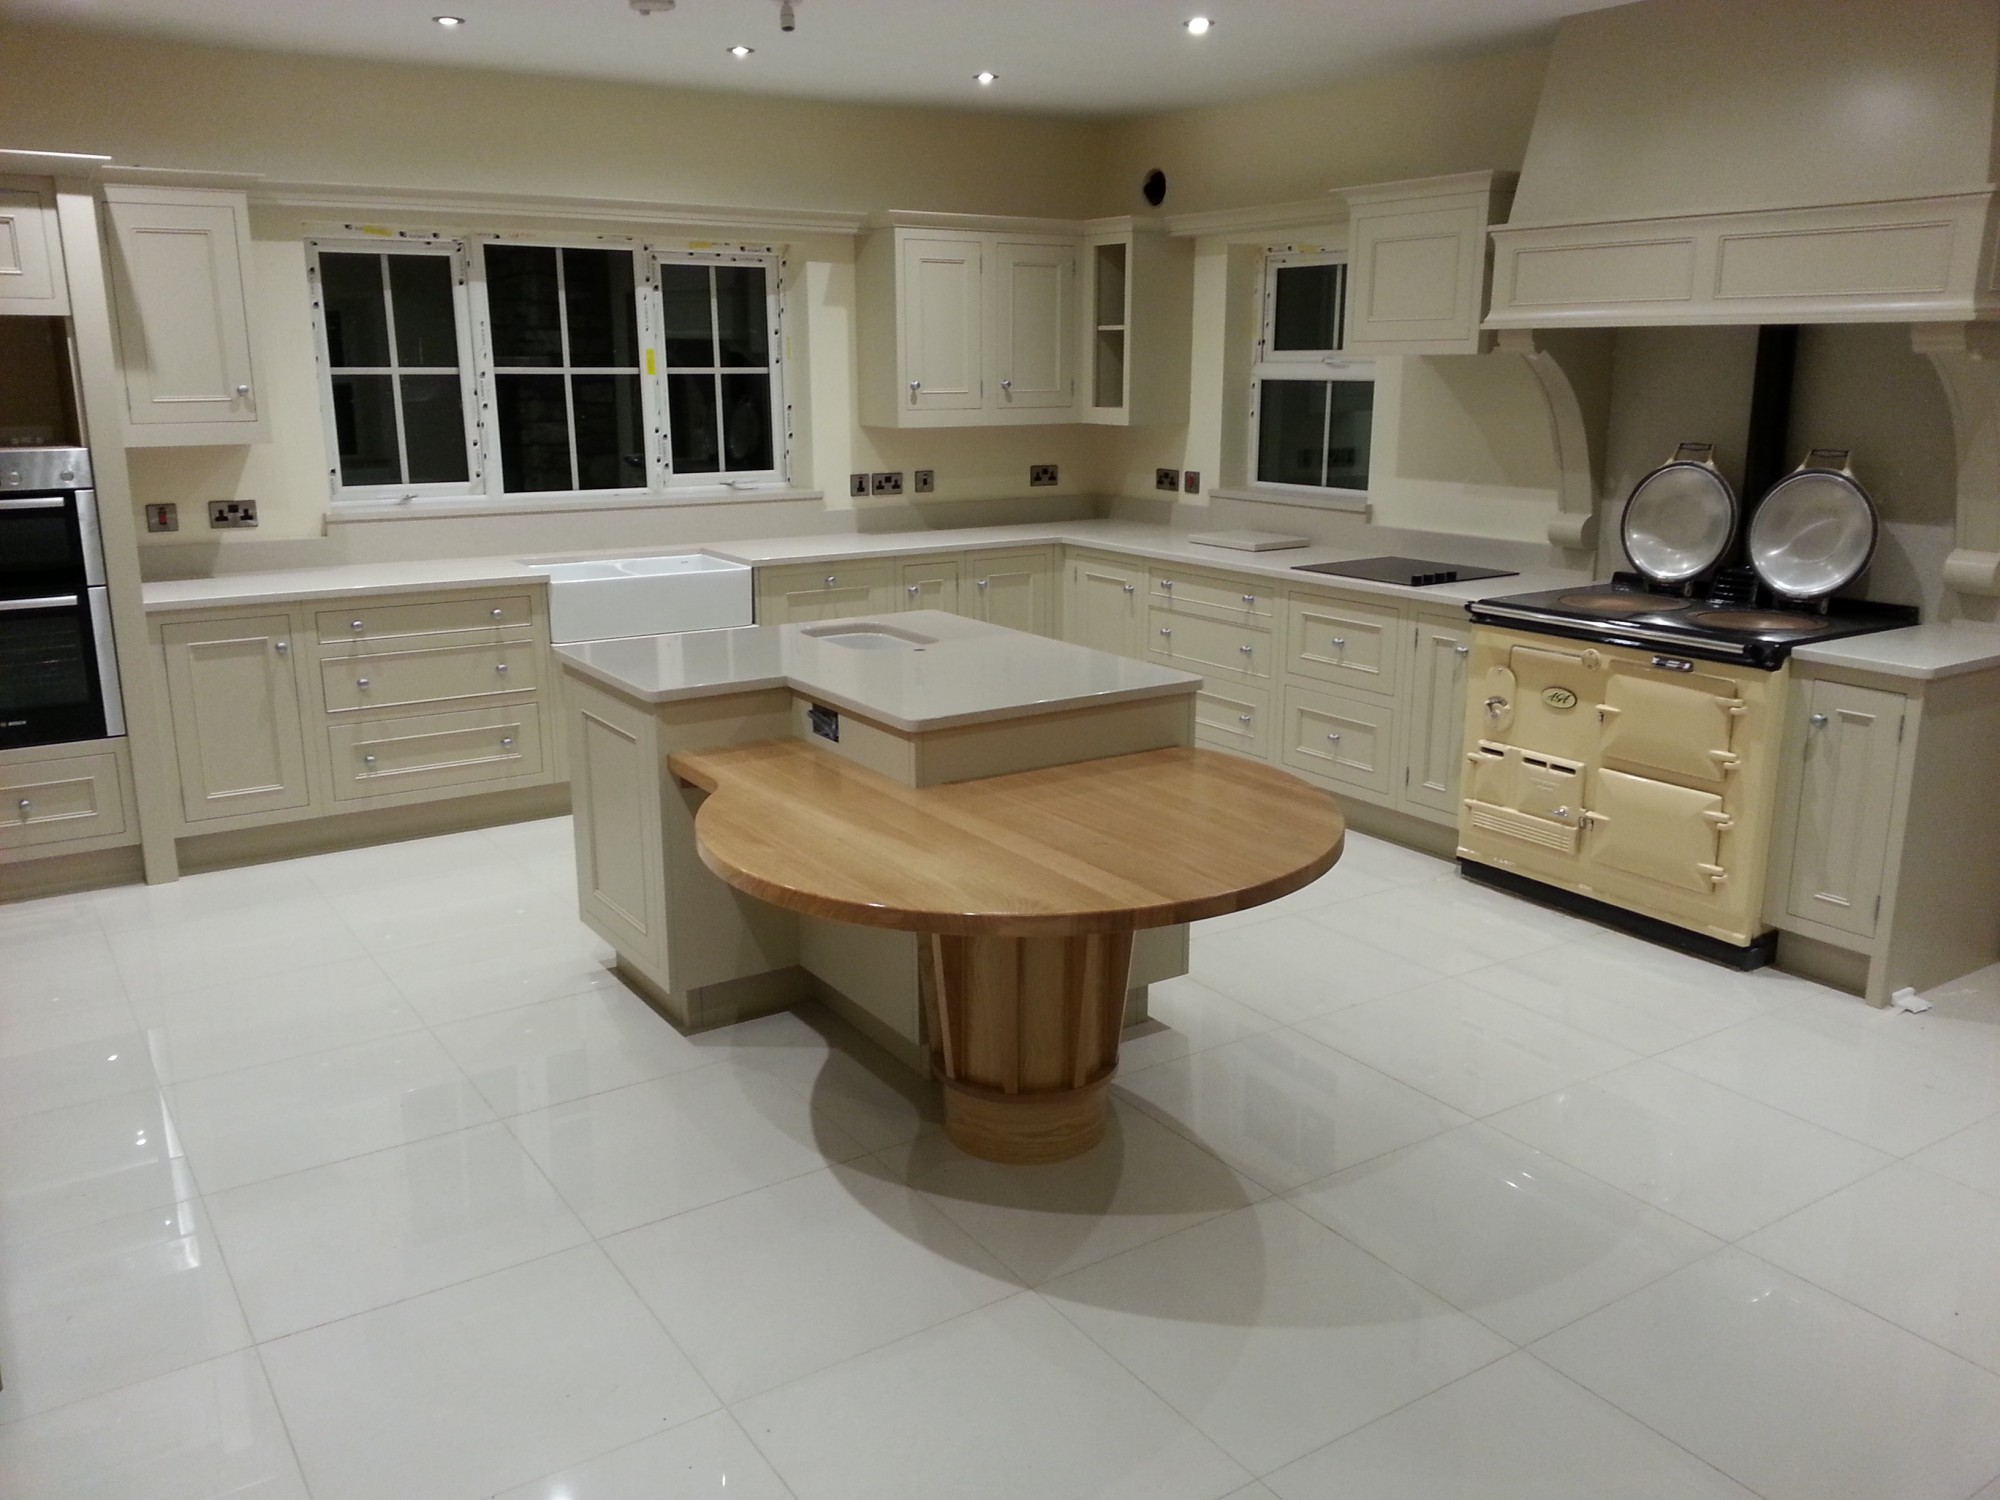 Please Take Some Time To View Samples Of Our Work By Clicking On The Images Below